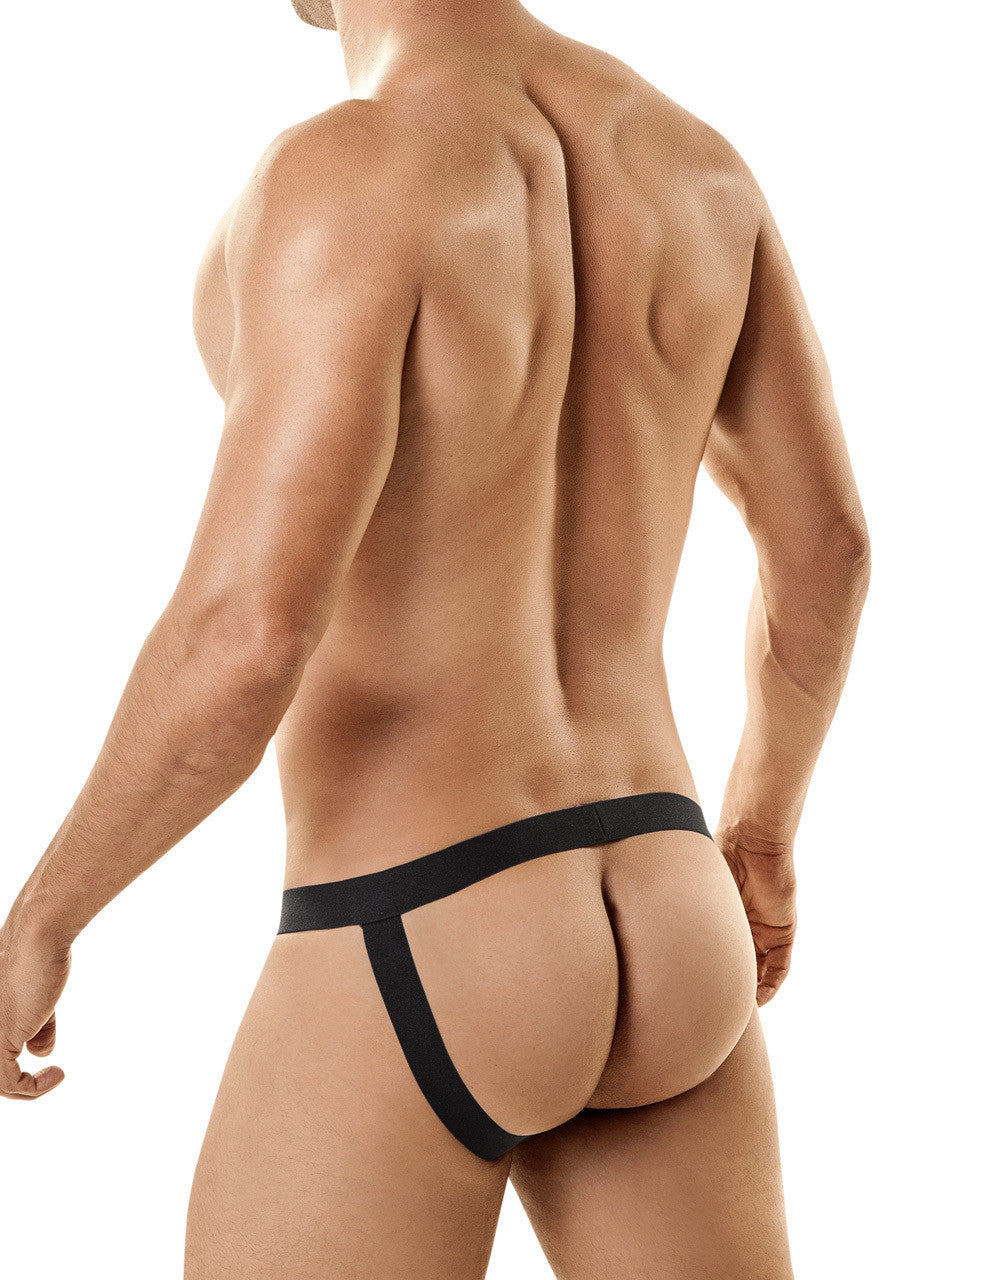 WildmanT The Ball Lifter® Jock Strap - Big Penis Underwear, WildmanT - WildmanT